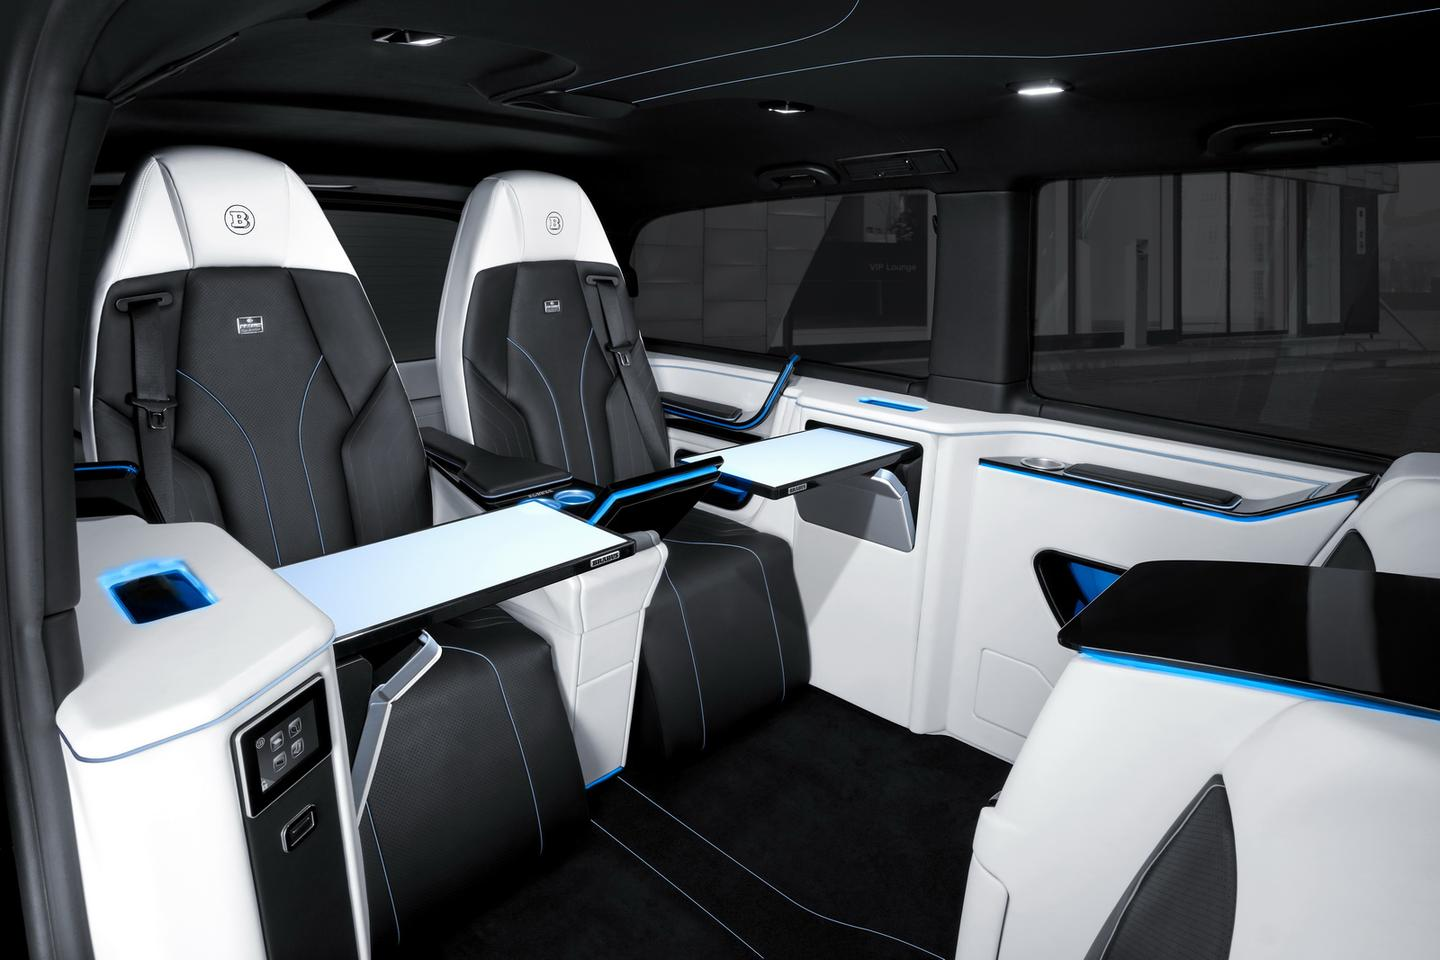 The new Brabus Business Lounge includes comfortable VIPseating, inductive phone chargingand folding tables